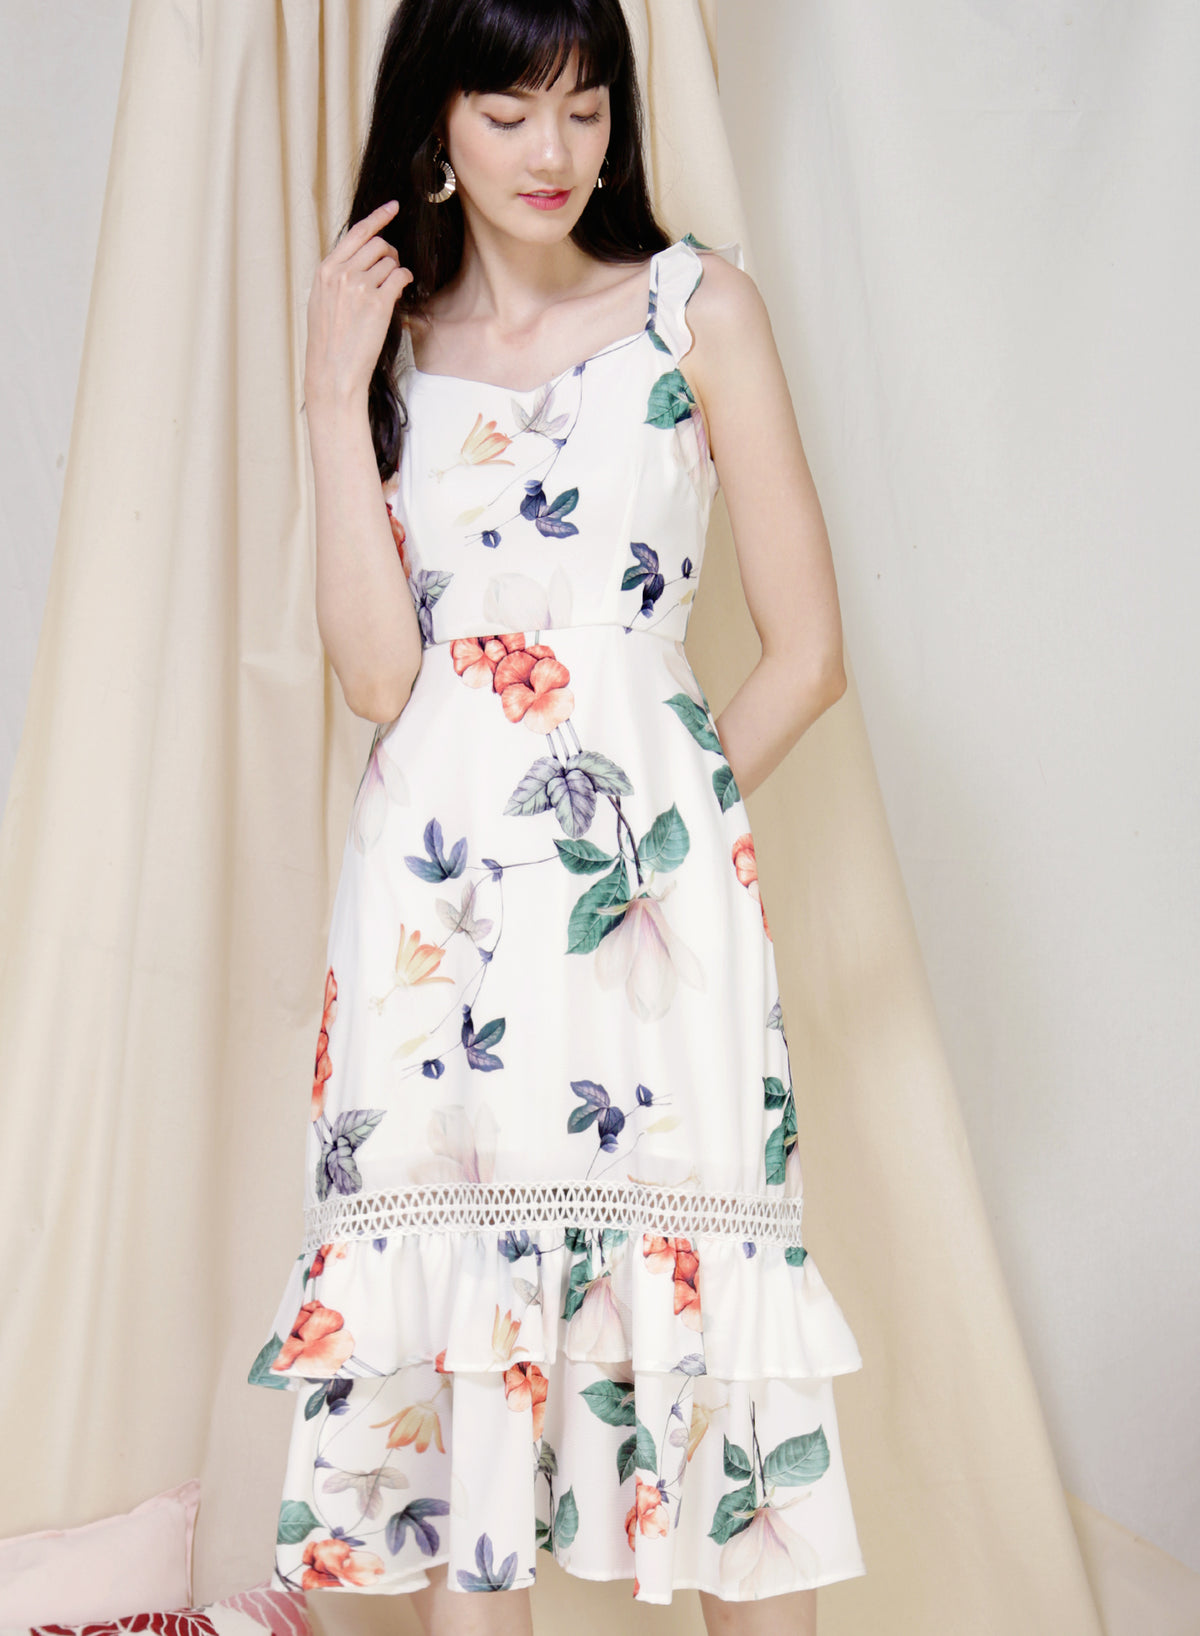 Entice Double Hem Floral Dress (White) at $ 46.00 only sold at And Well Dressed Online Fashion Store Singapore